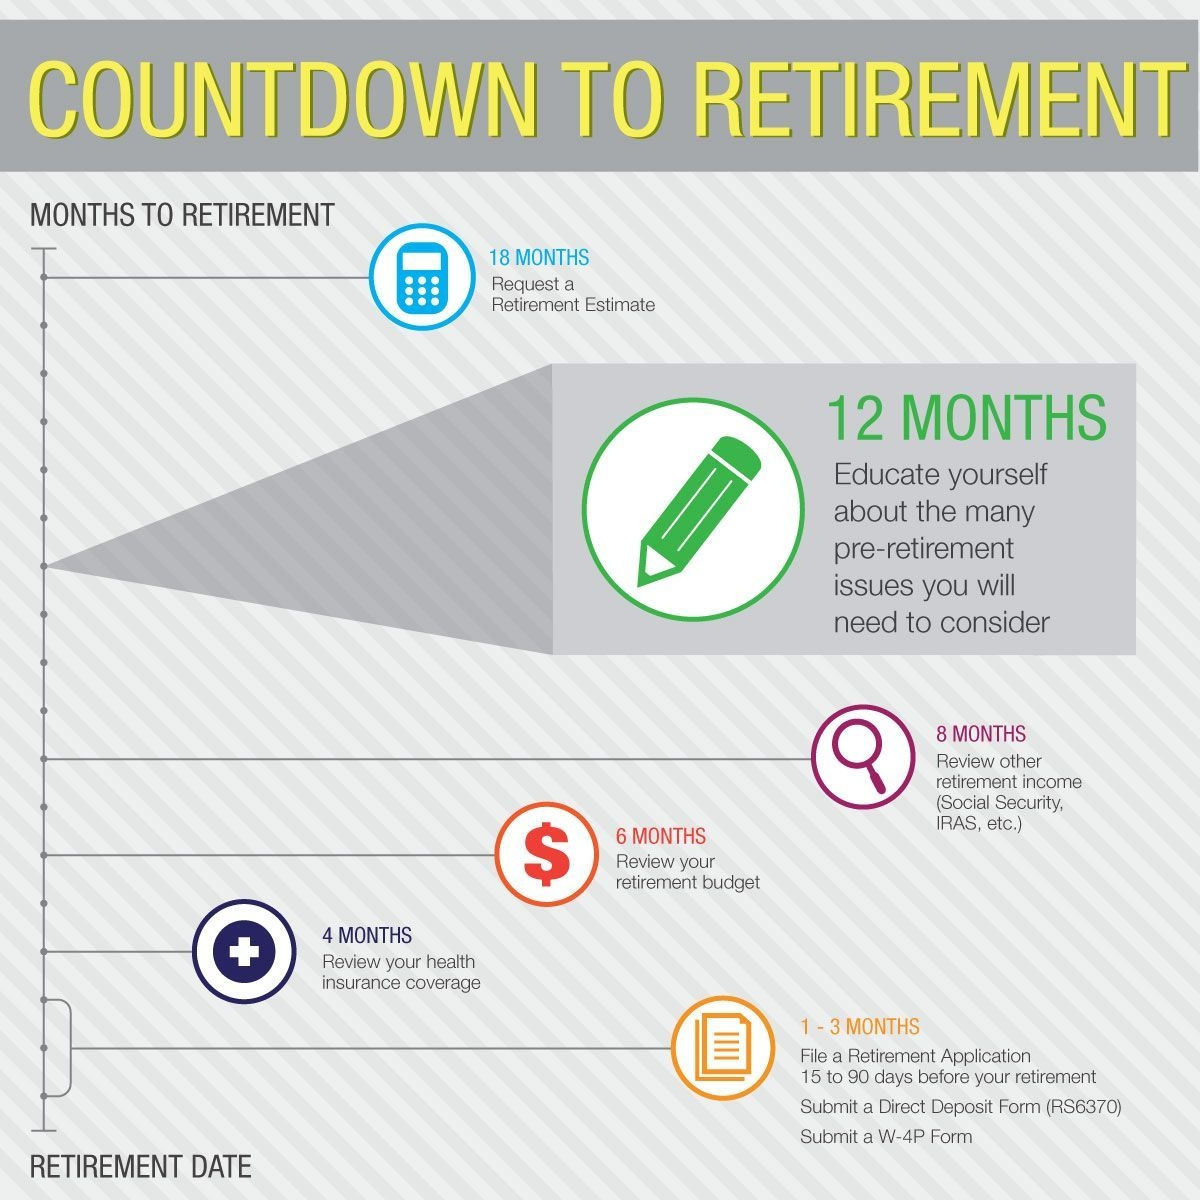 Countdown To Retirement 12 Months | Retirement Countdown